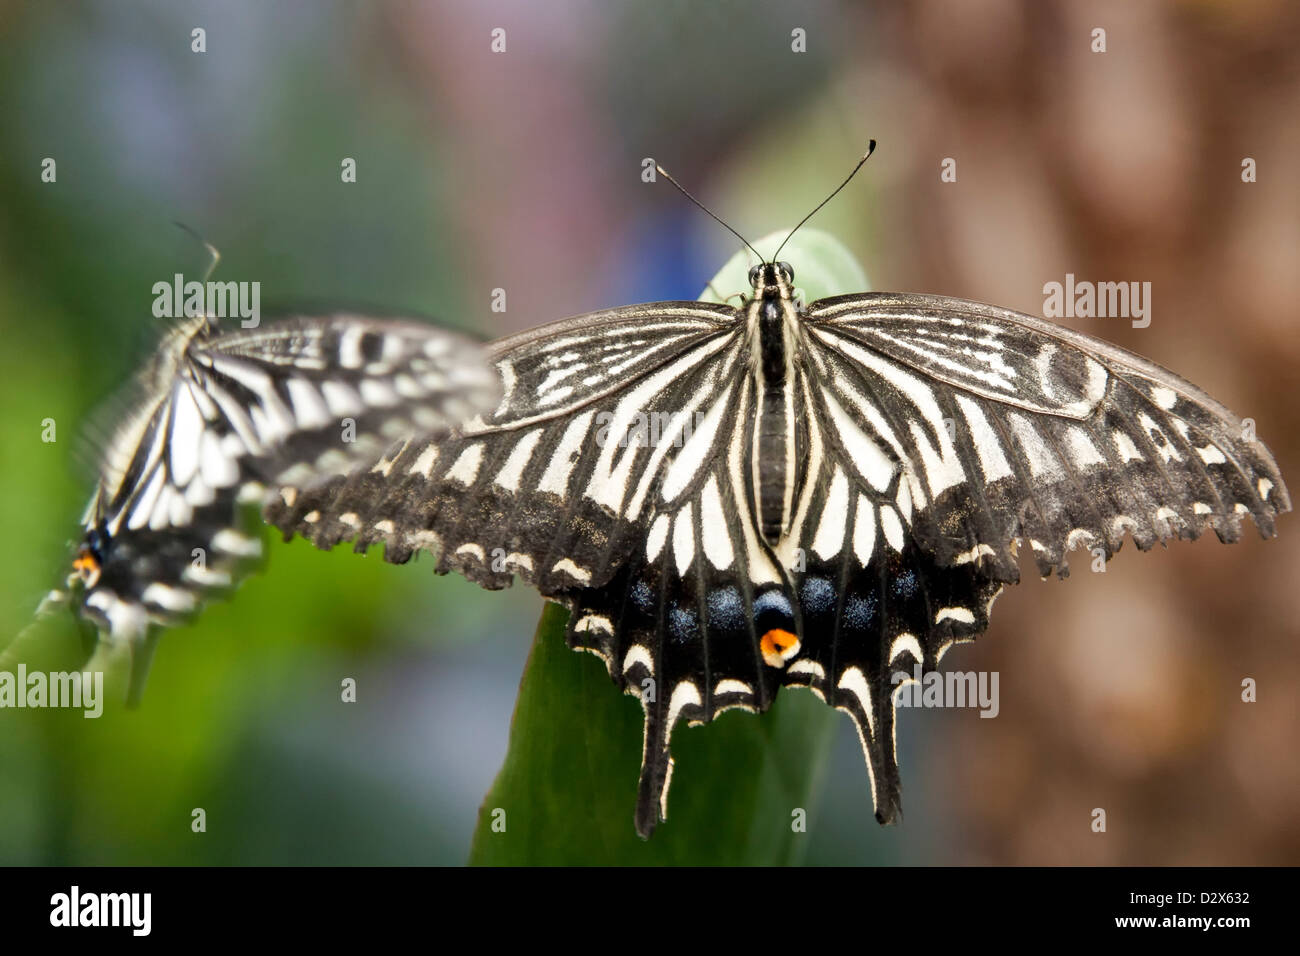 Lime butterfly (Papilio demoleus) is a butterfly usually seen in large parts of Asia. Stock Photo